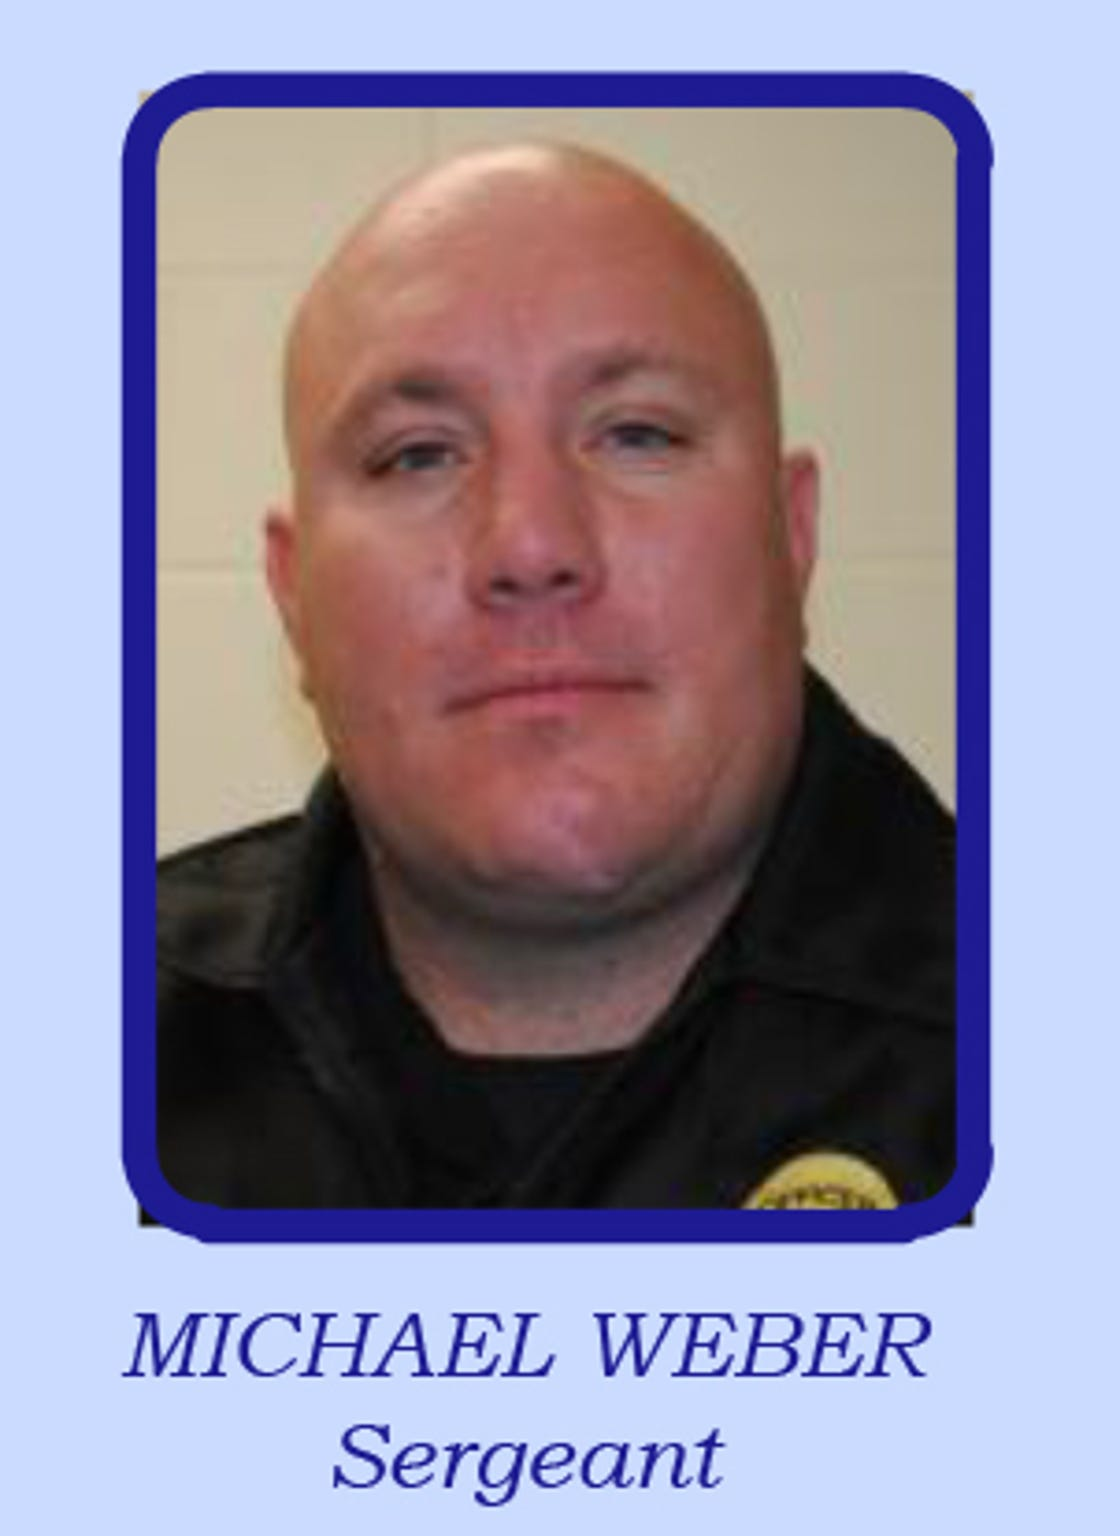 Michael Weber, former police sergeant in McFarland, was arrested in a domestic violence case.